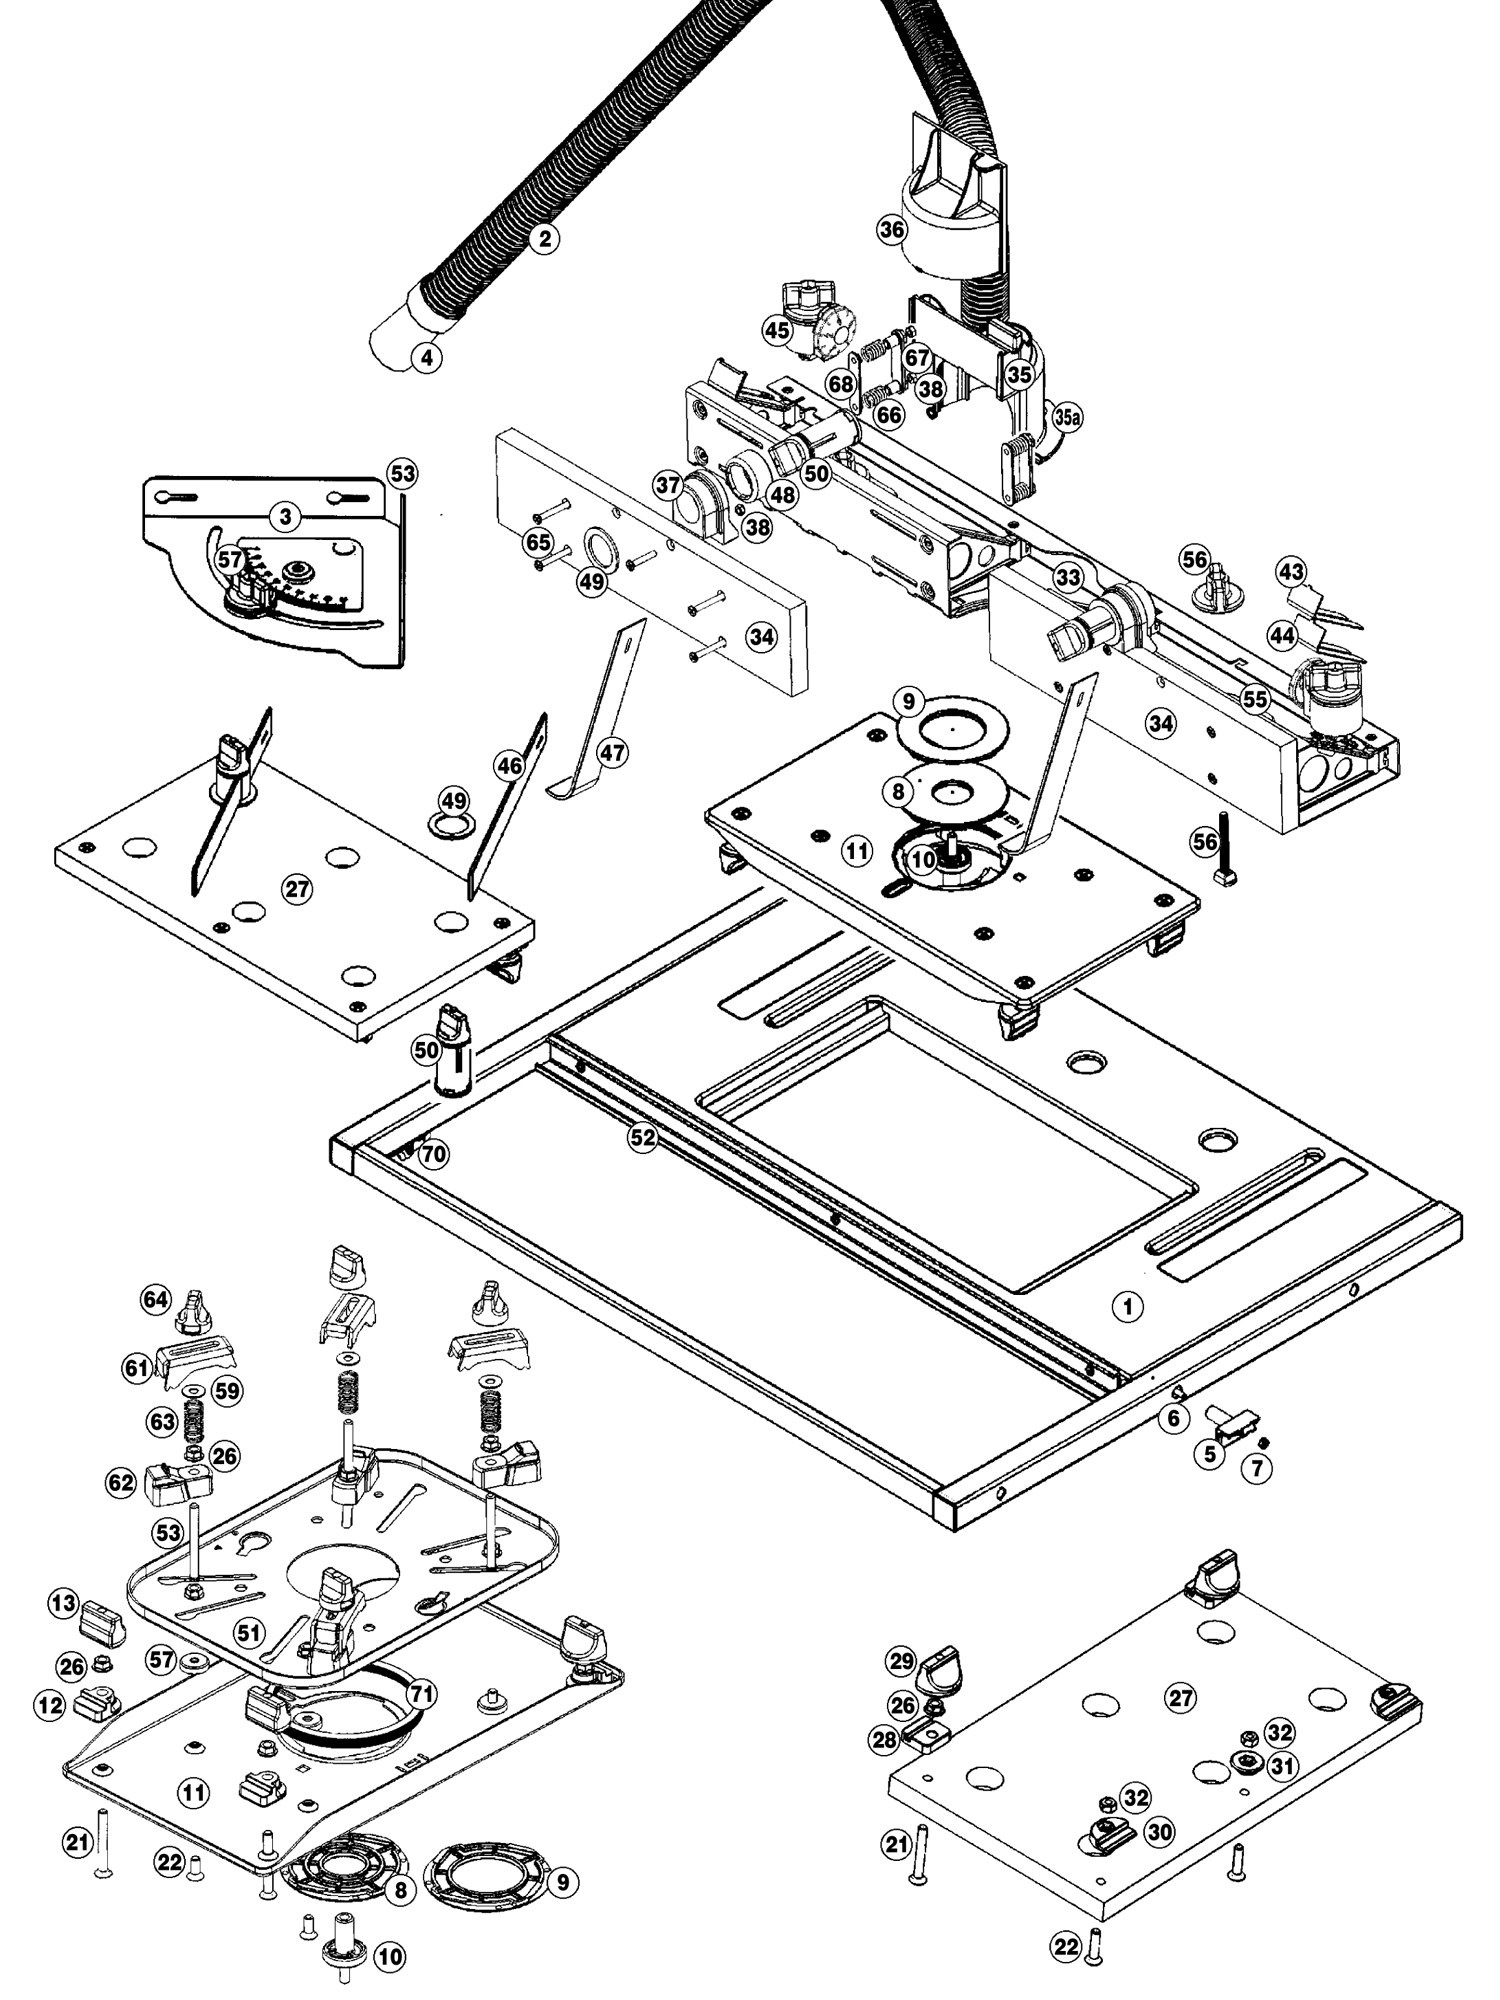 Tool Spares Online Precision Router Table